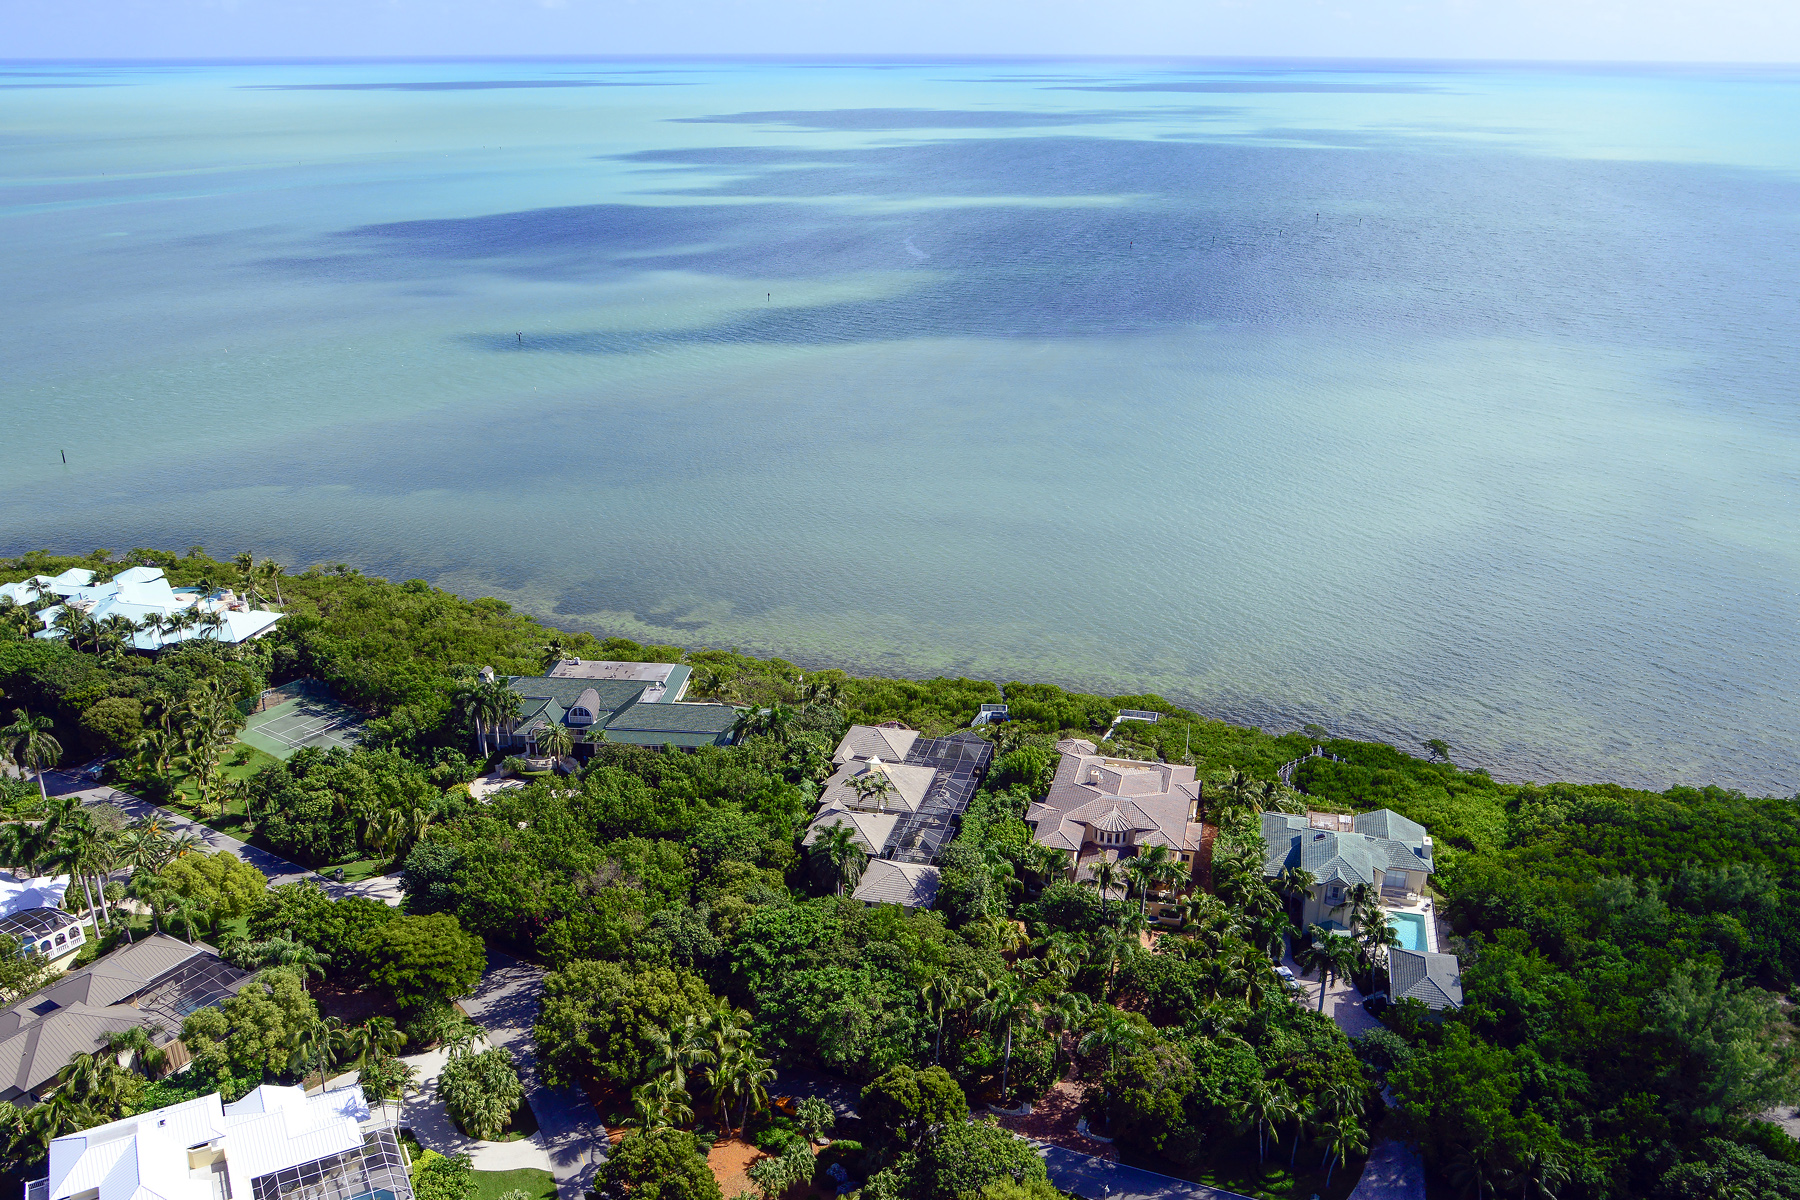 独户住宅 为 销售 在 Ocean Front Home at Ocean Reef 6 Sunrise Cay Drive Ocean Reef Community, 拉哥, 佛罗里达州, 33037 美国